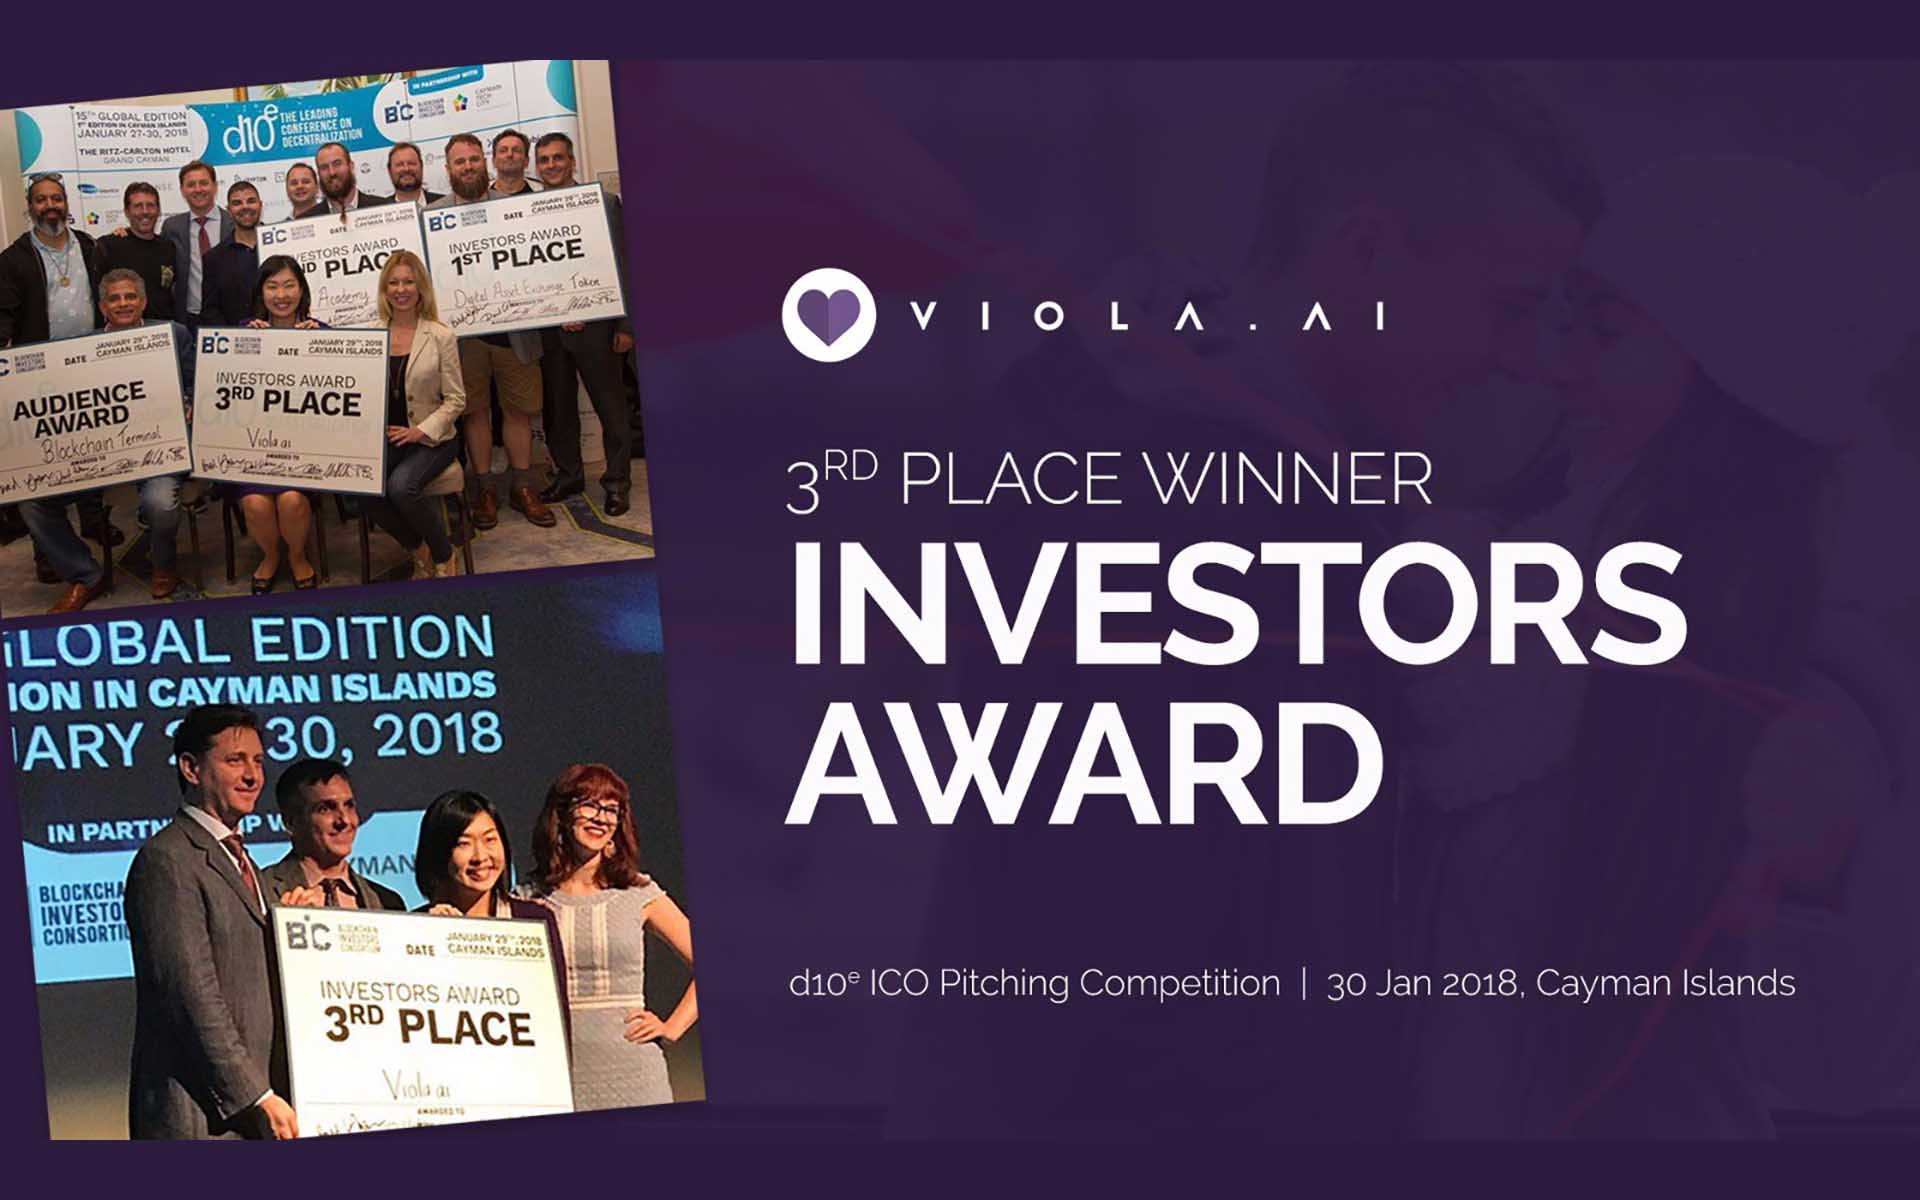 Viola.AI Wins Investor Award at d10e ICO Pitching Competition at Cayman Islands